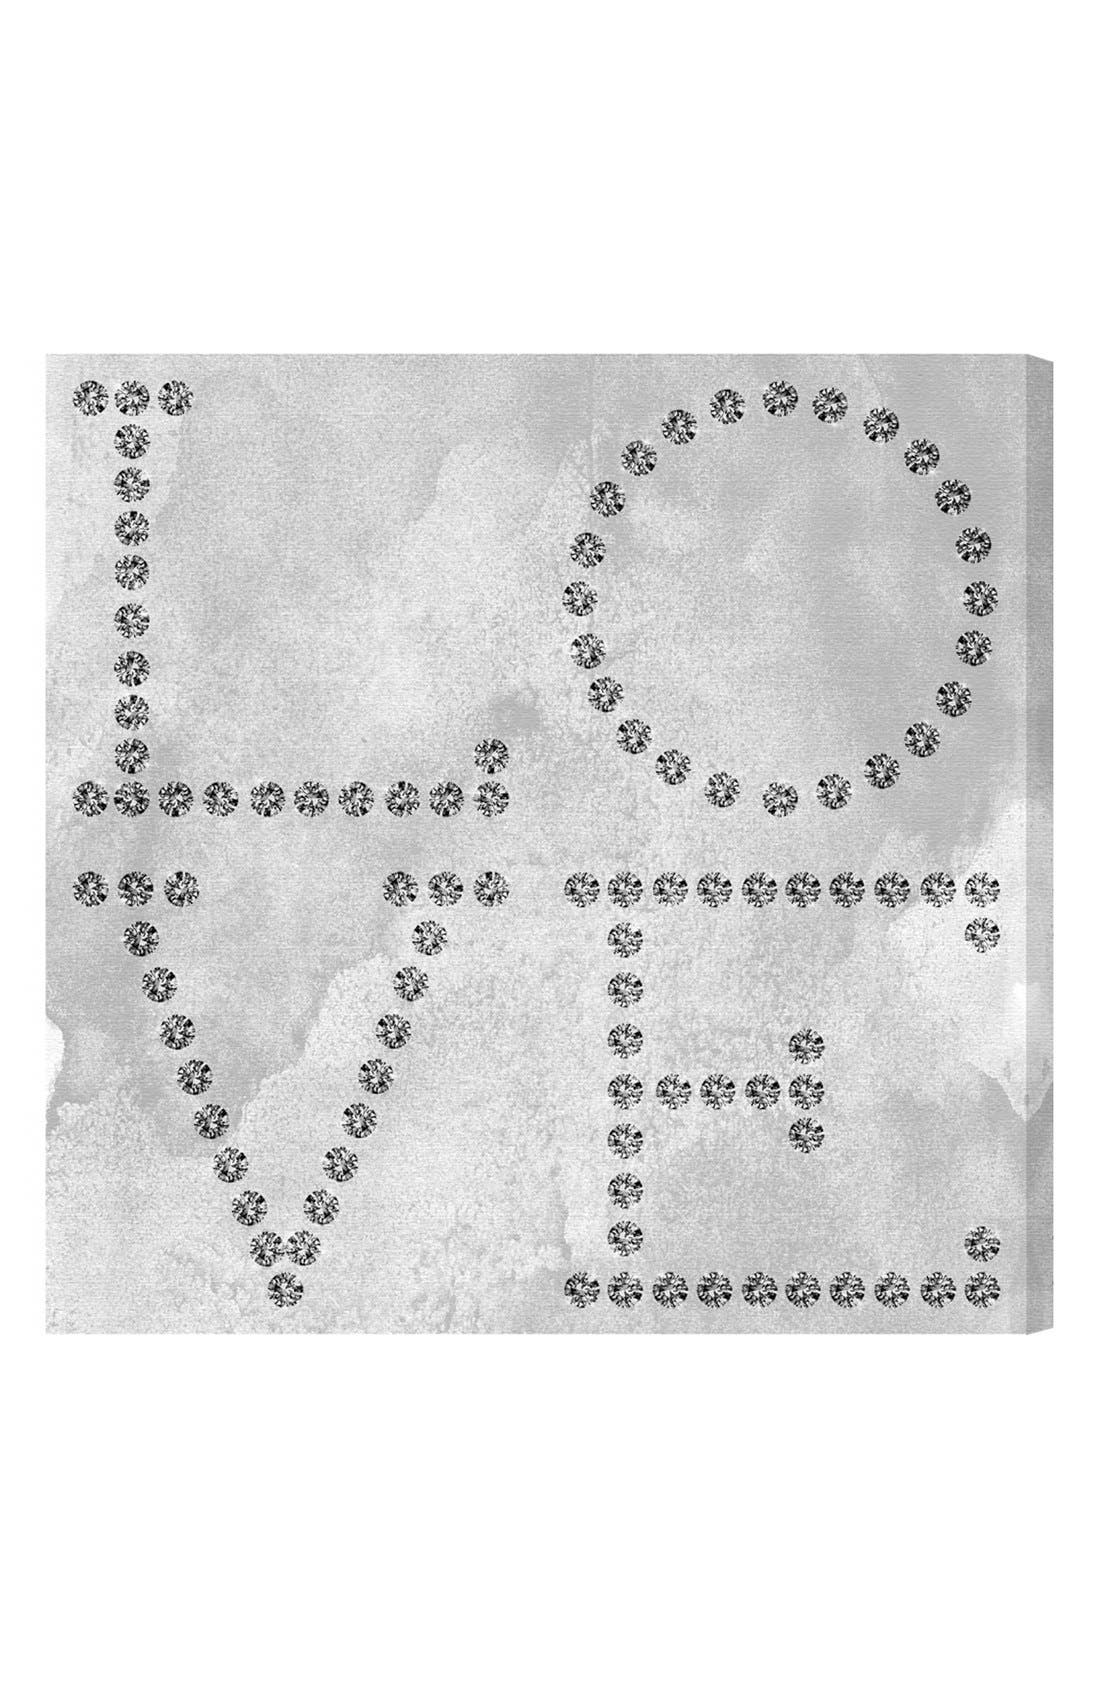 'Love Diamonds' Wall Art,                         Main,                         color, Grey